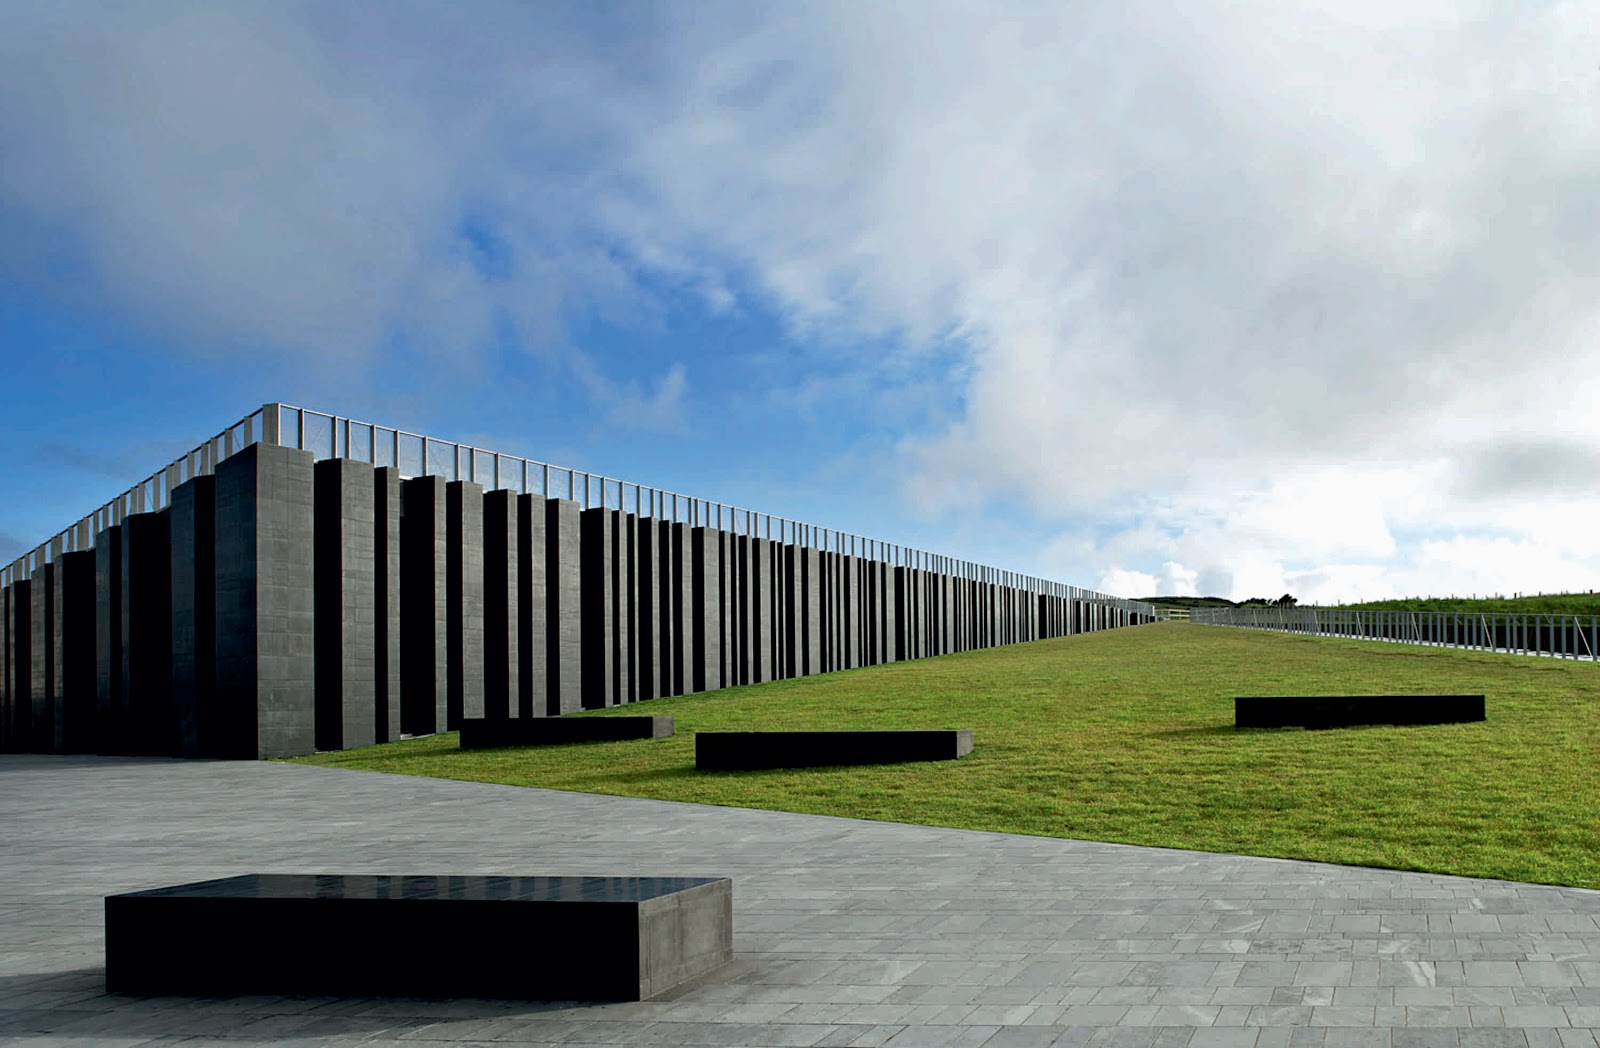 Giant s causeway visitor centre by heneghan peng architects for Landscape architect ireland